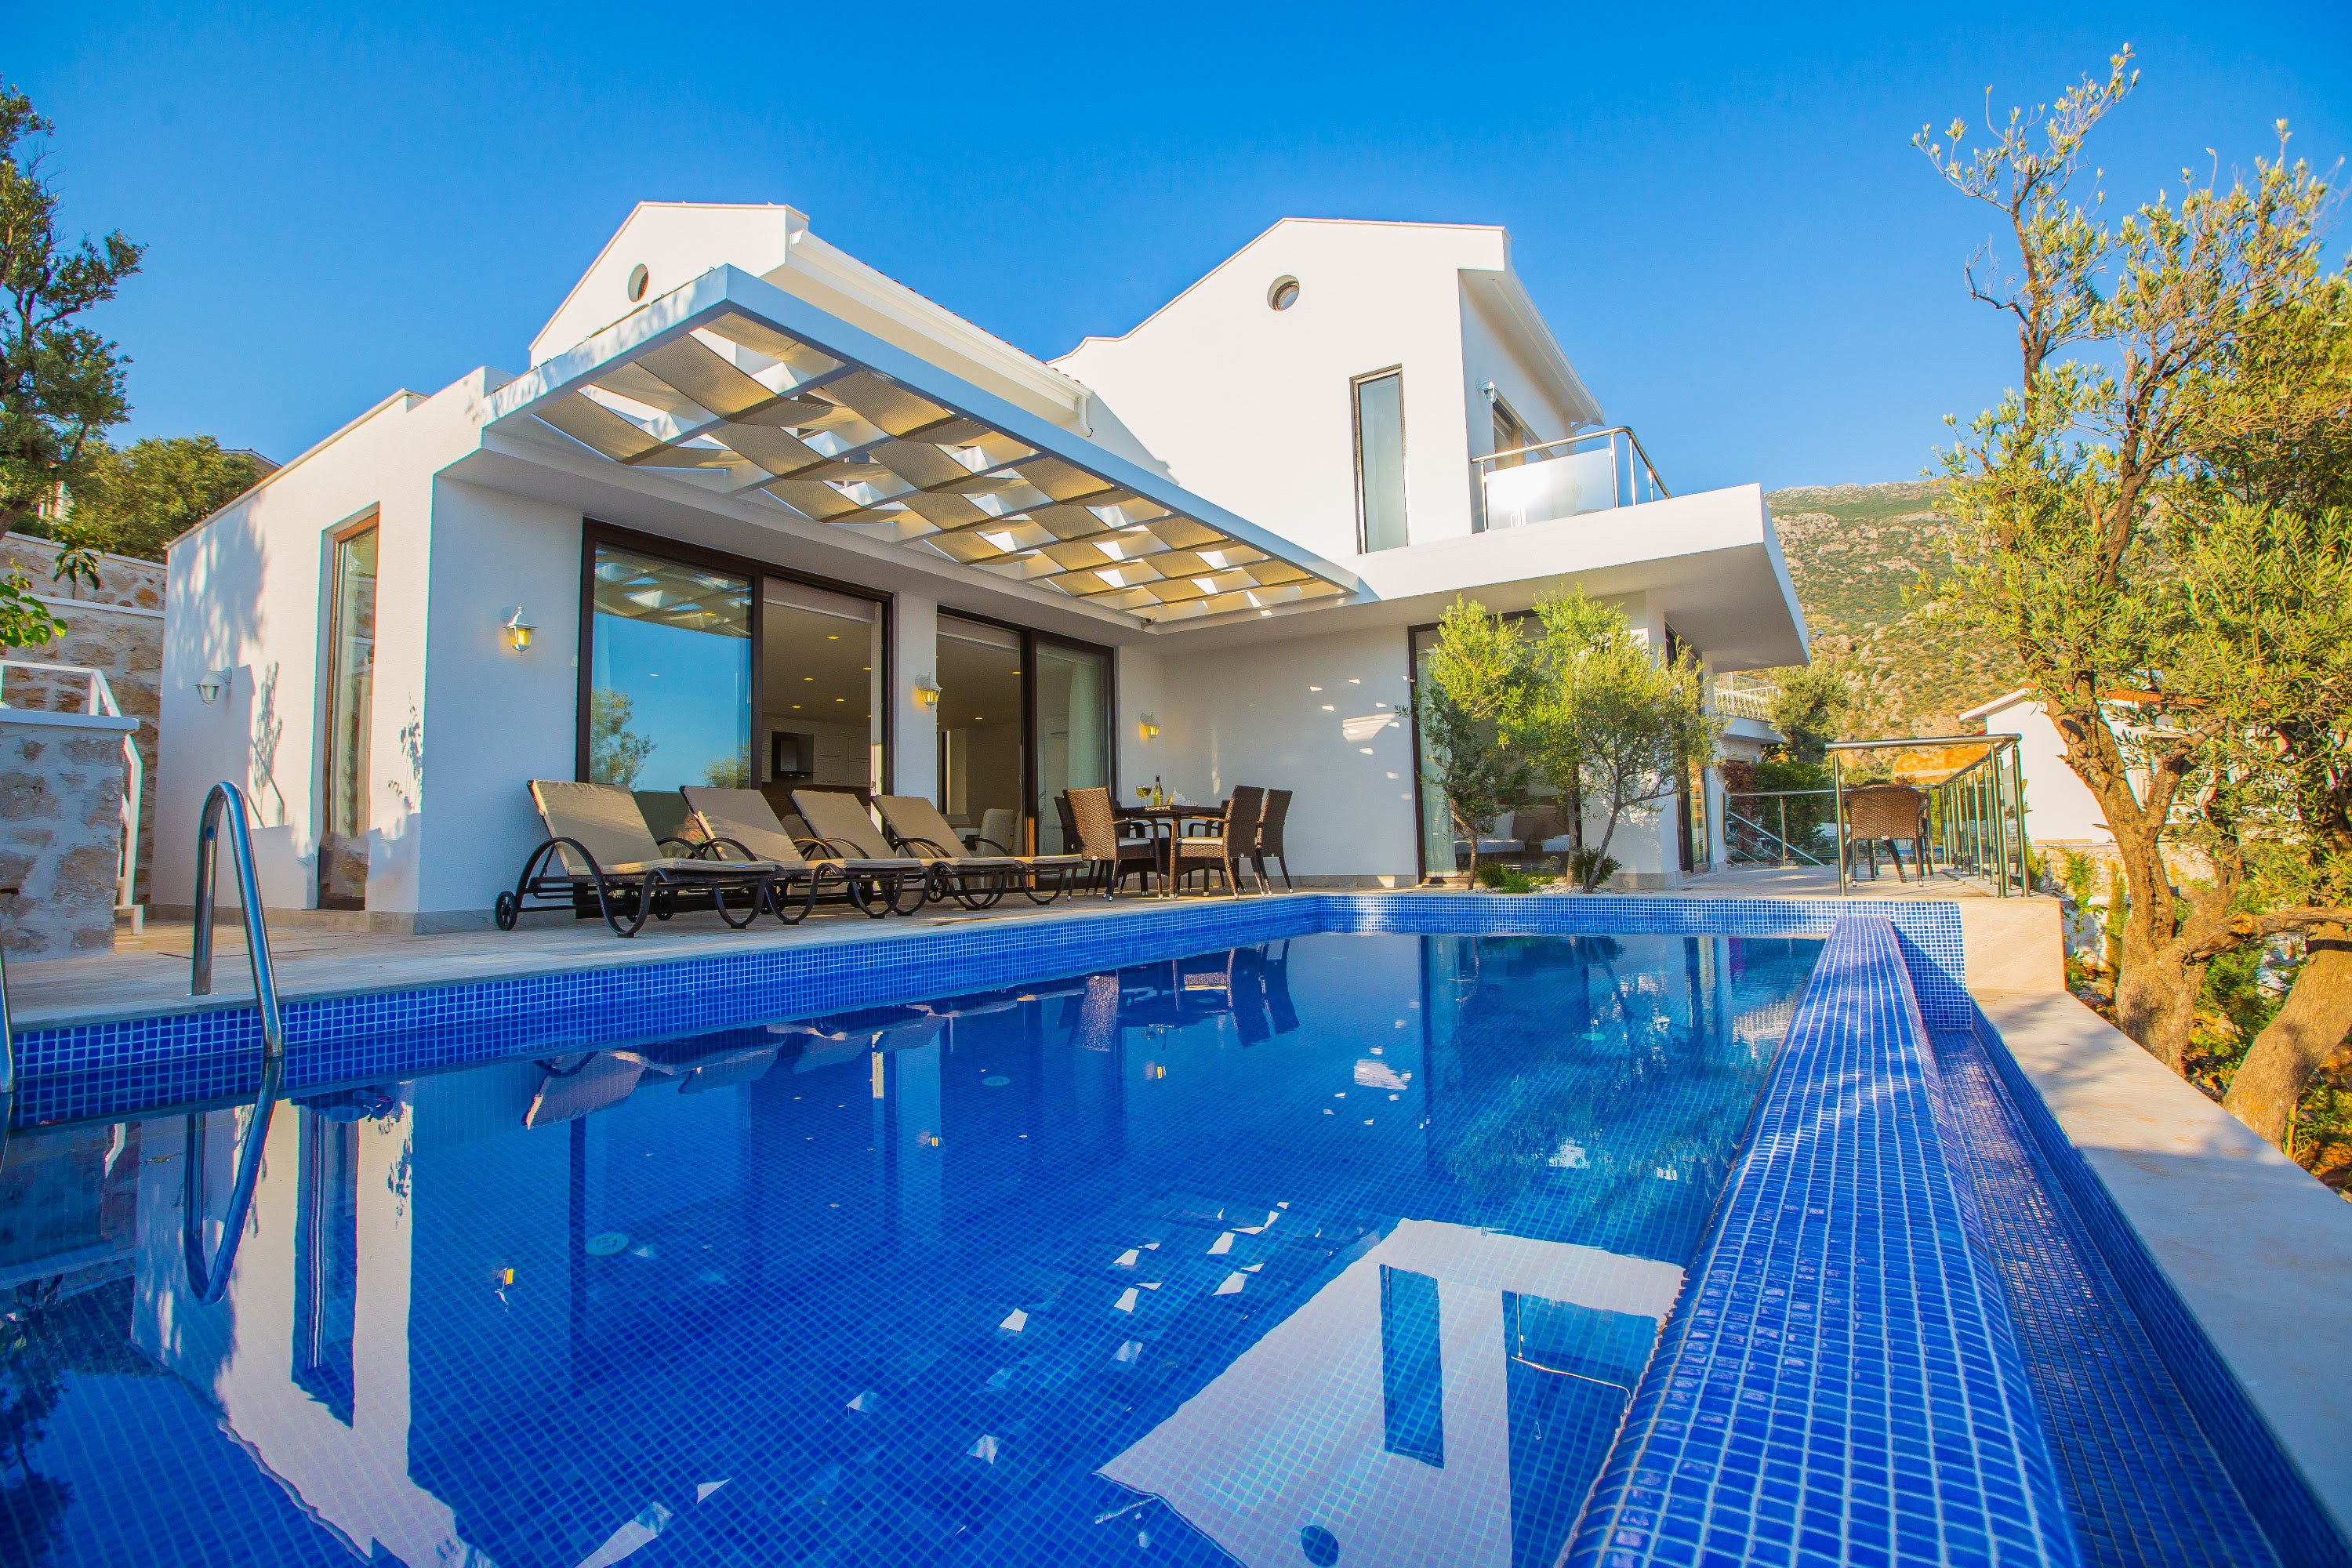 Top Reasons Why A Luxury Villa Might Be A Better Vacation Option